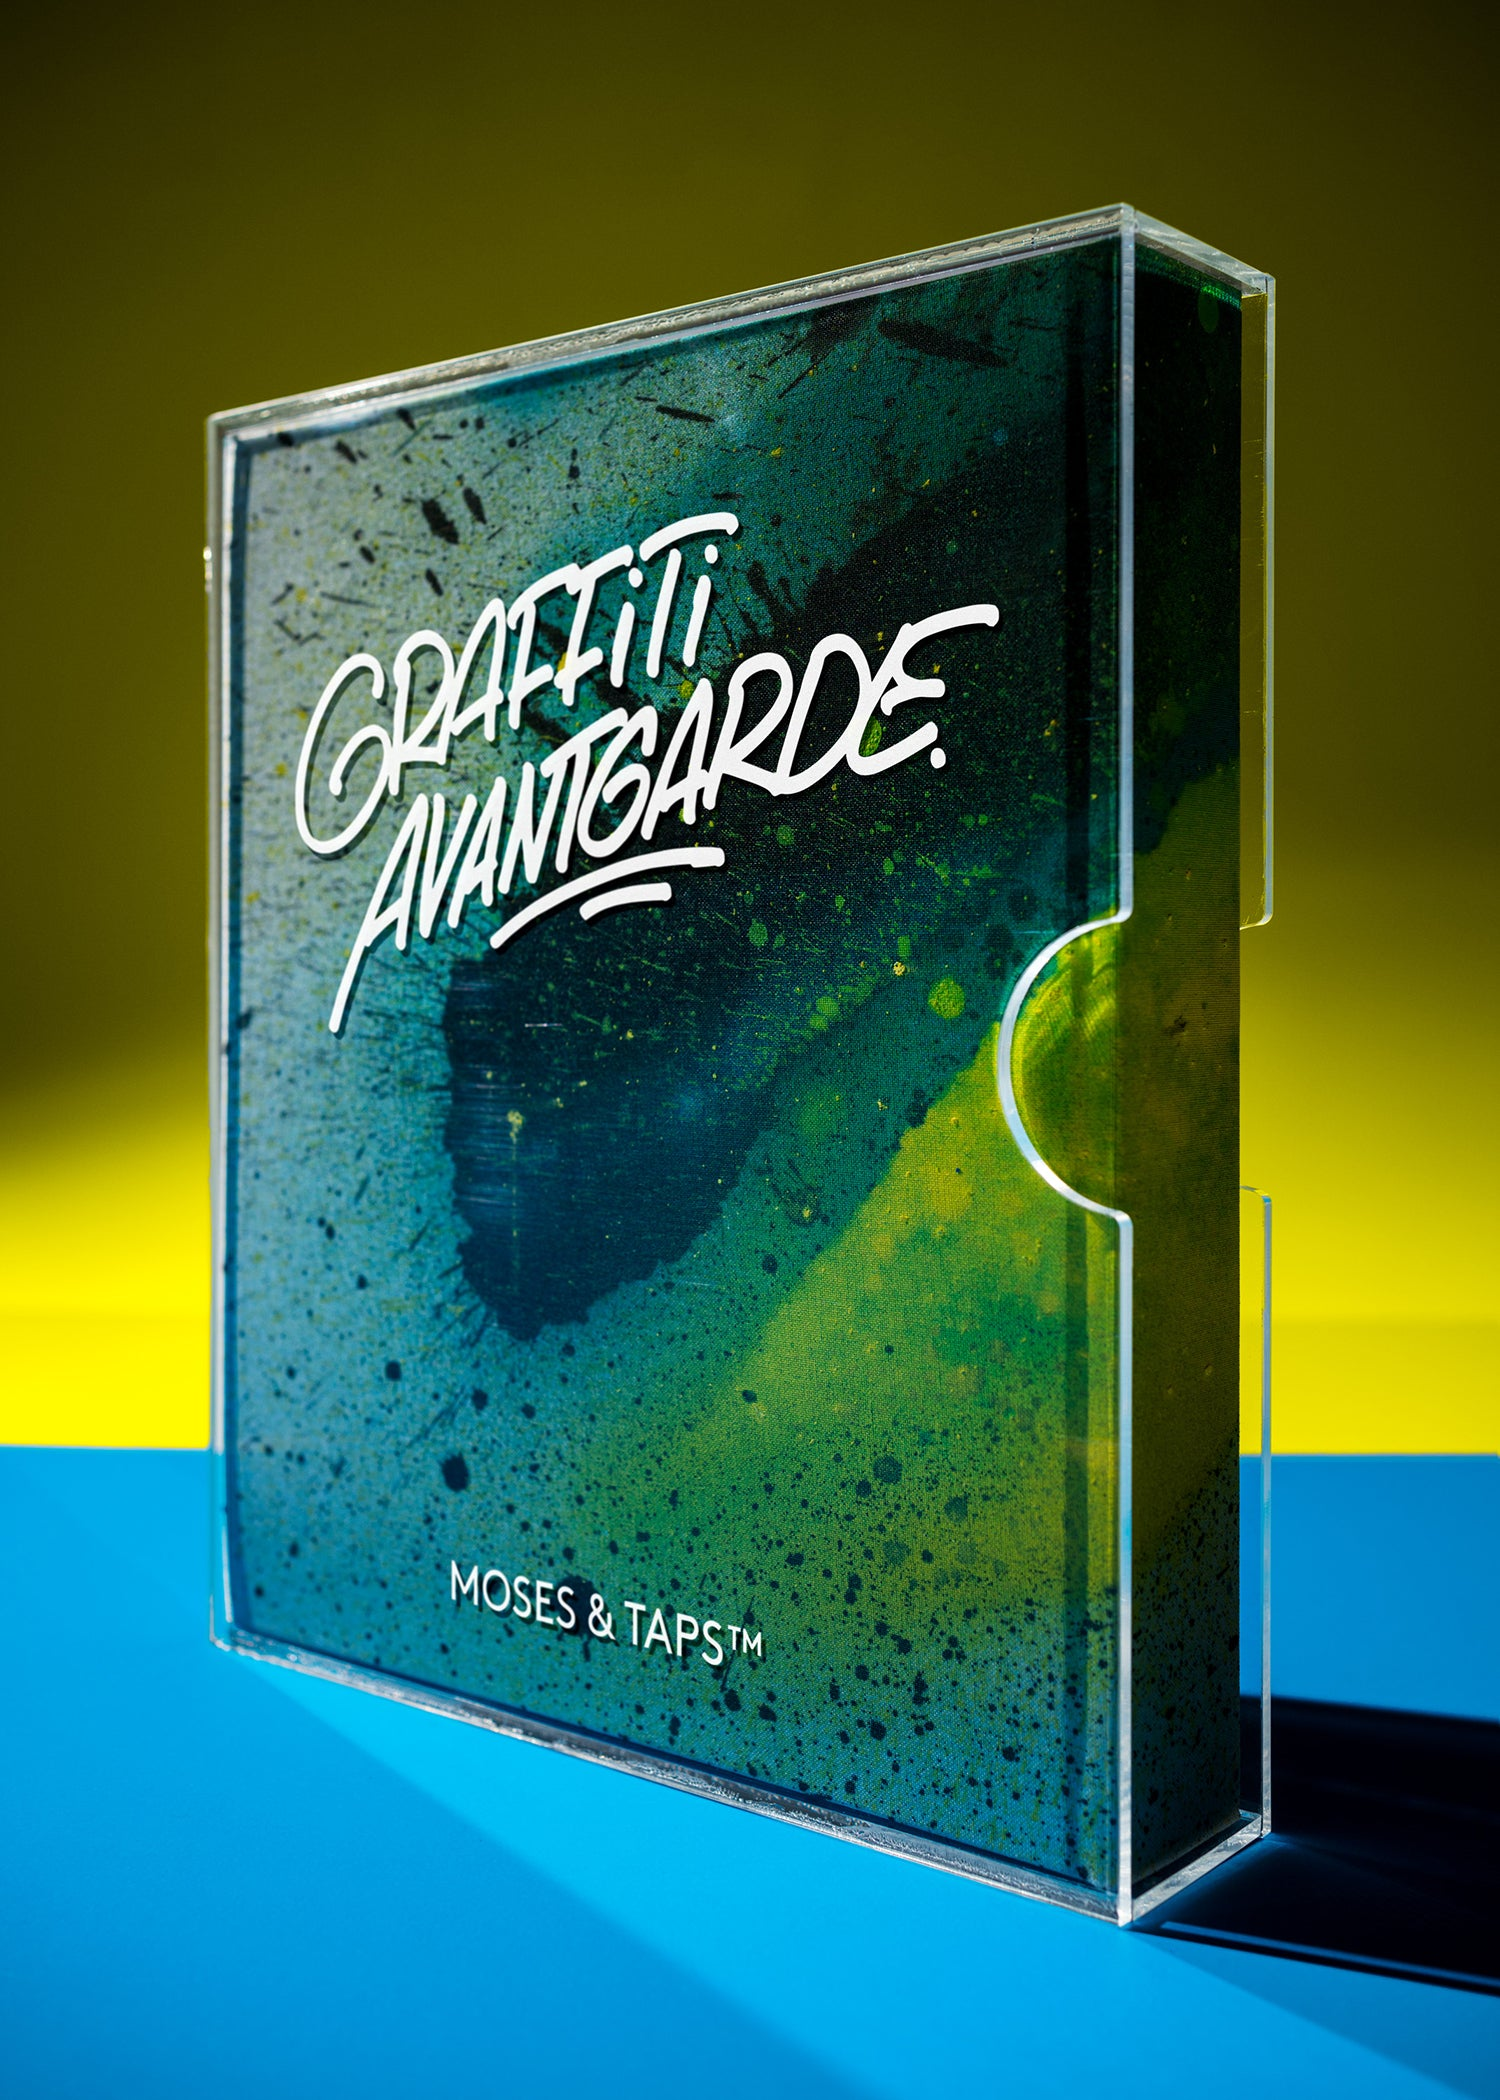 GRAFFITI AVANTGARDE MOSES AND TAPS BOOK THE GRIFTERS PUBLISHING SPLASH DELUXE EDITION UNIQUE HANDPAINTED COVER ACRYLIC SLIPCASE SIGNED